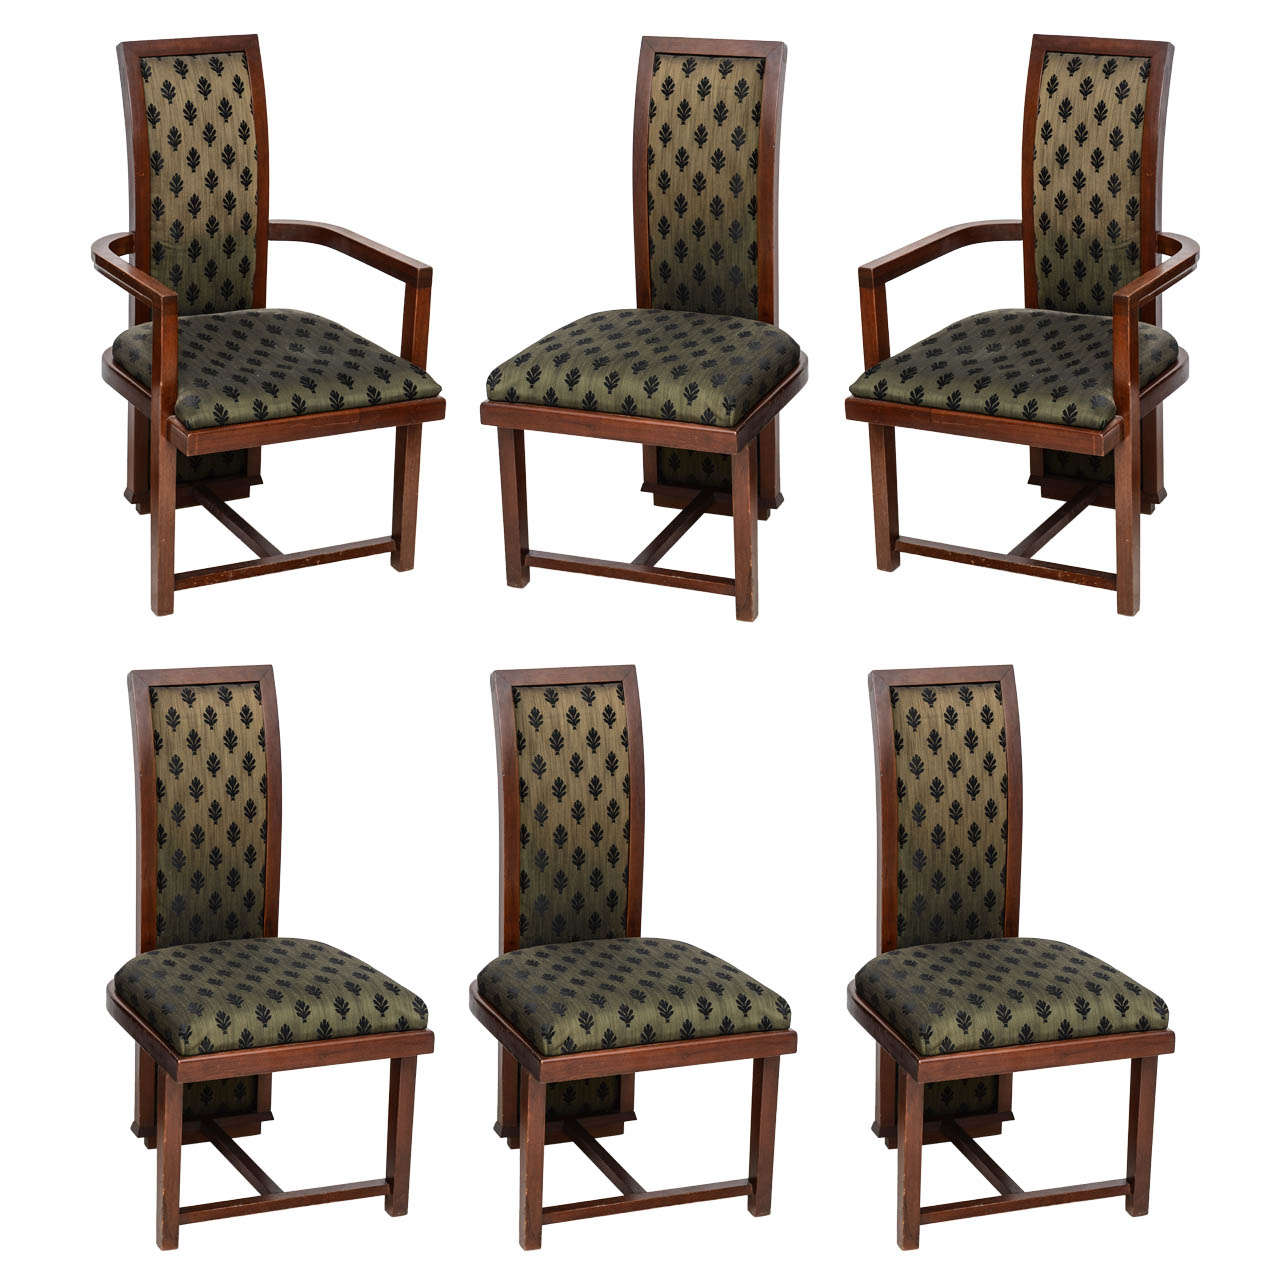 Frank Lloyd Wright Chairs Set Of 12 Frank Lloyd Wright Taliesin Mahogany Dining